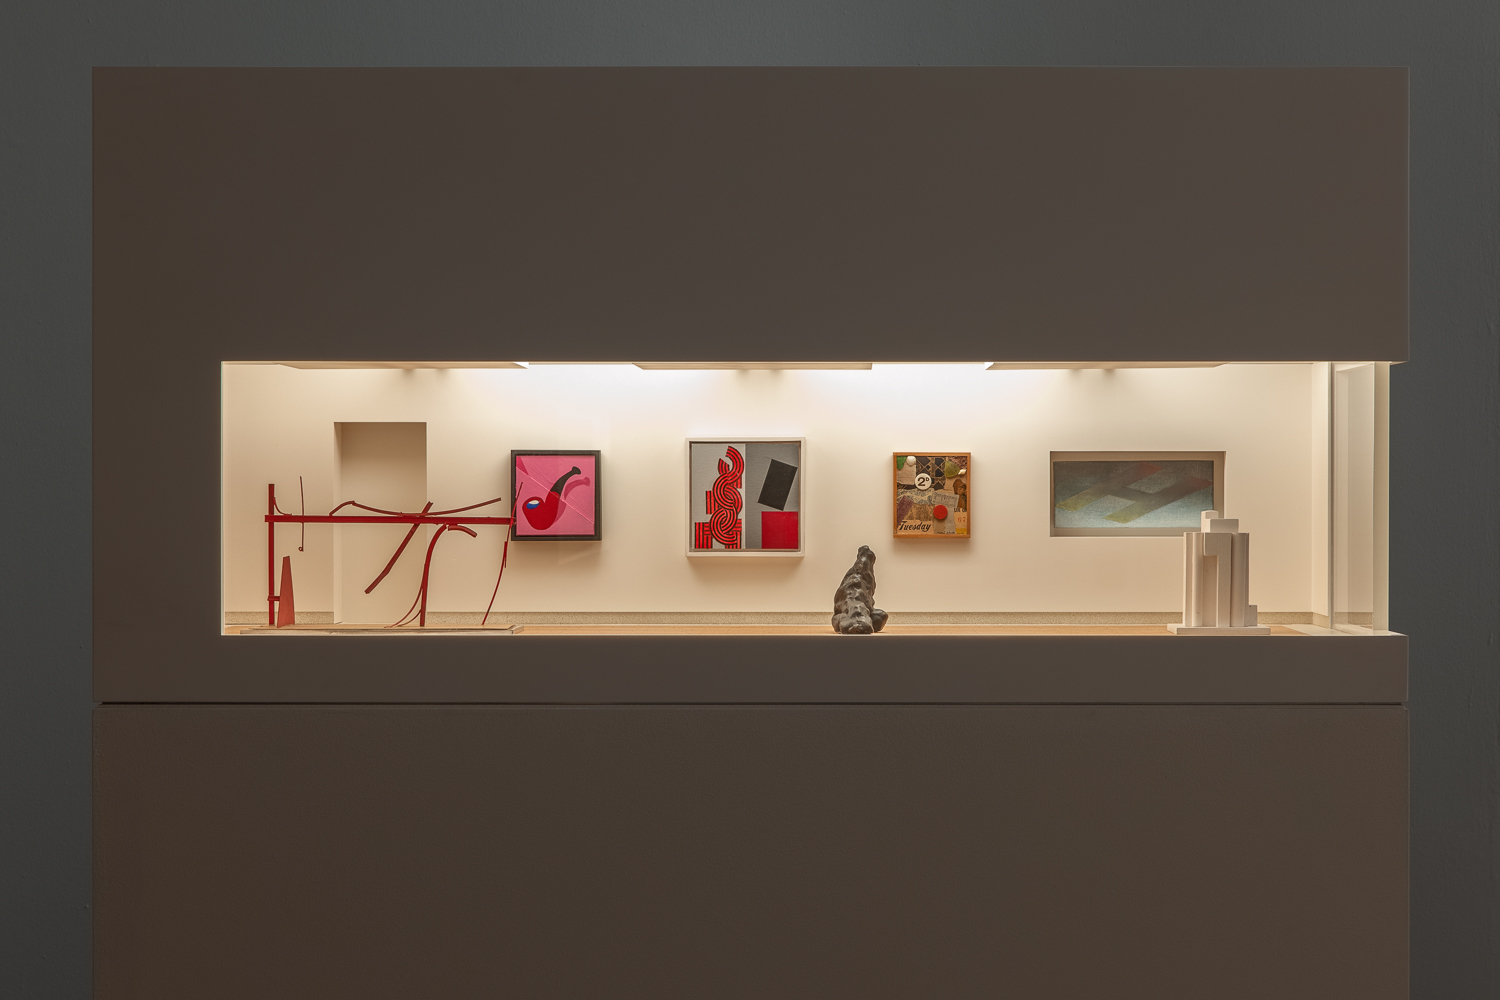 A model art gallery consisting of one room with white walls and wooden and stone-look flooring and filled with paintings and sculptures.